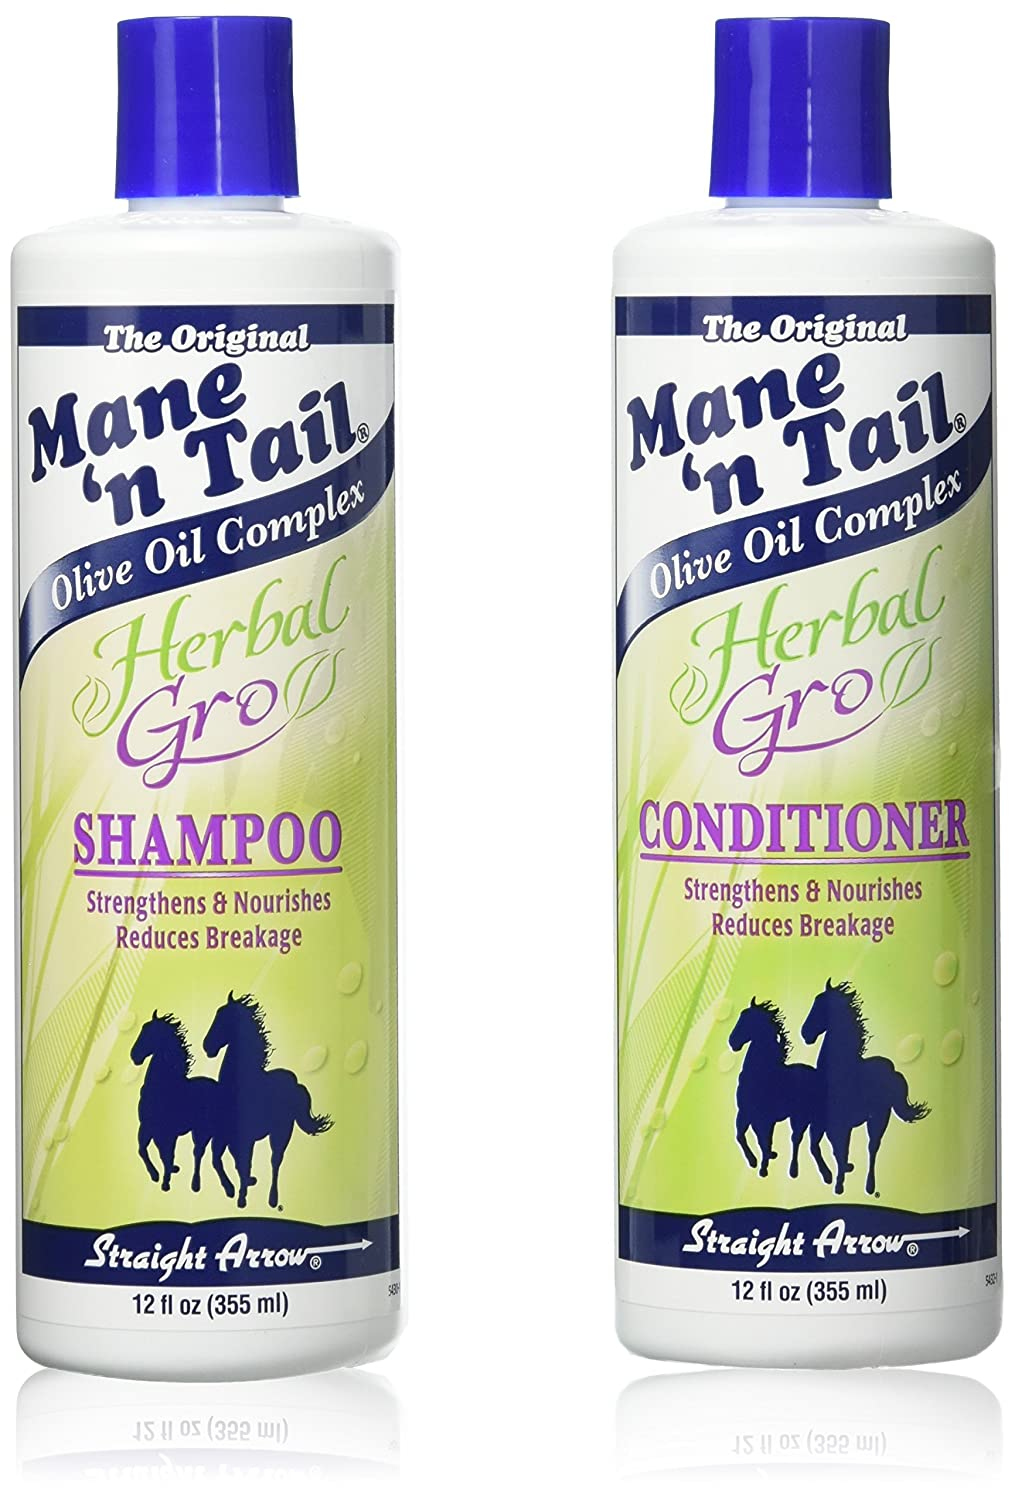 The Original Mane 'n Tail Olive Oil Complex – Herbal Gro Shampoo + Conditioner – Strengthens & Nourishes – Reduces Breakage – 12 Oz - 2-Pack Mane 'n Tail